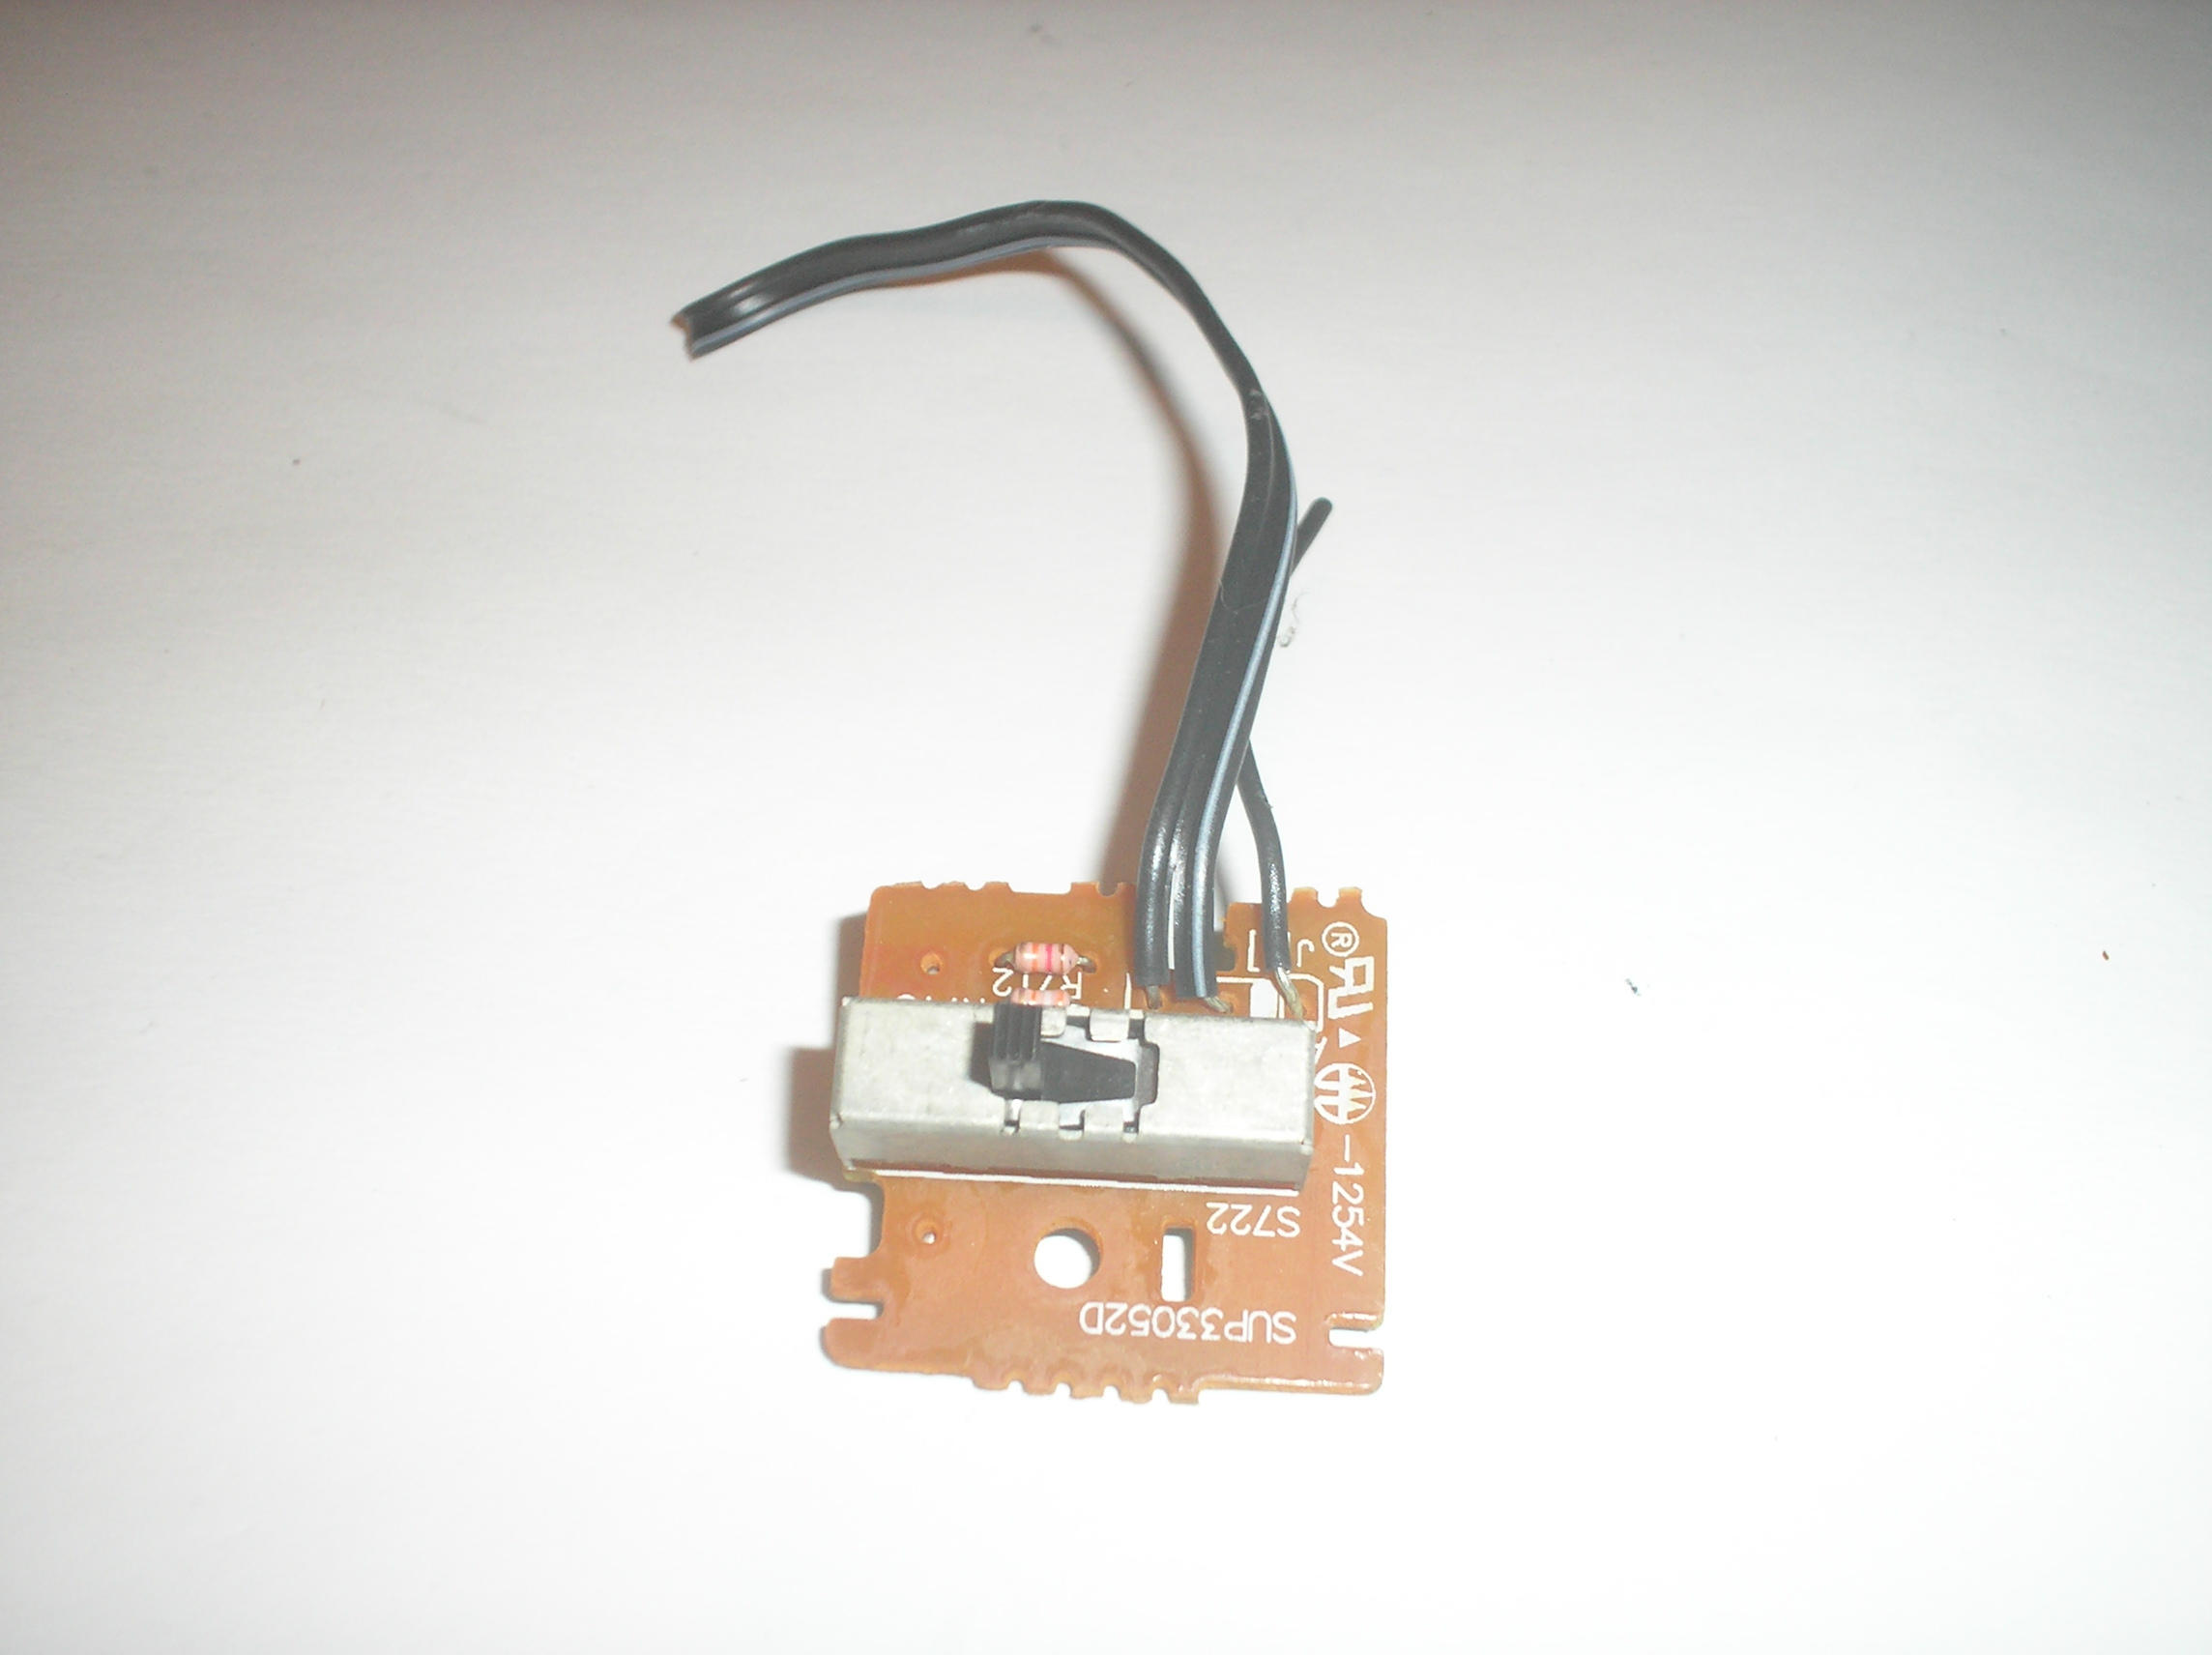 RS-T230 Timer Record Switch Assy. contains switch button board and grounding piece. item is used.